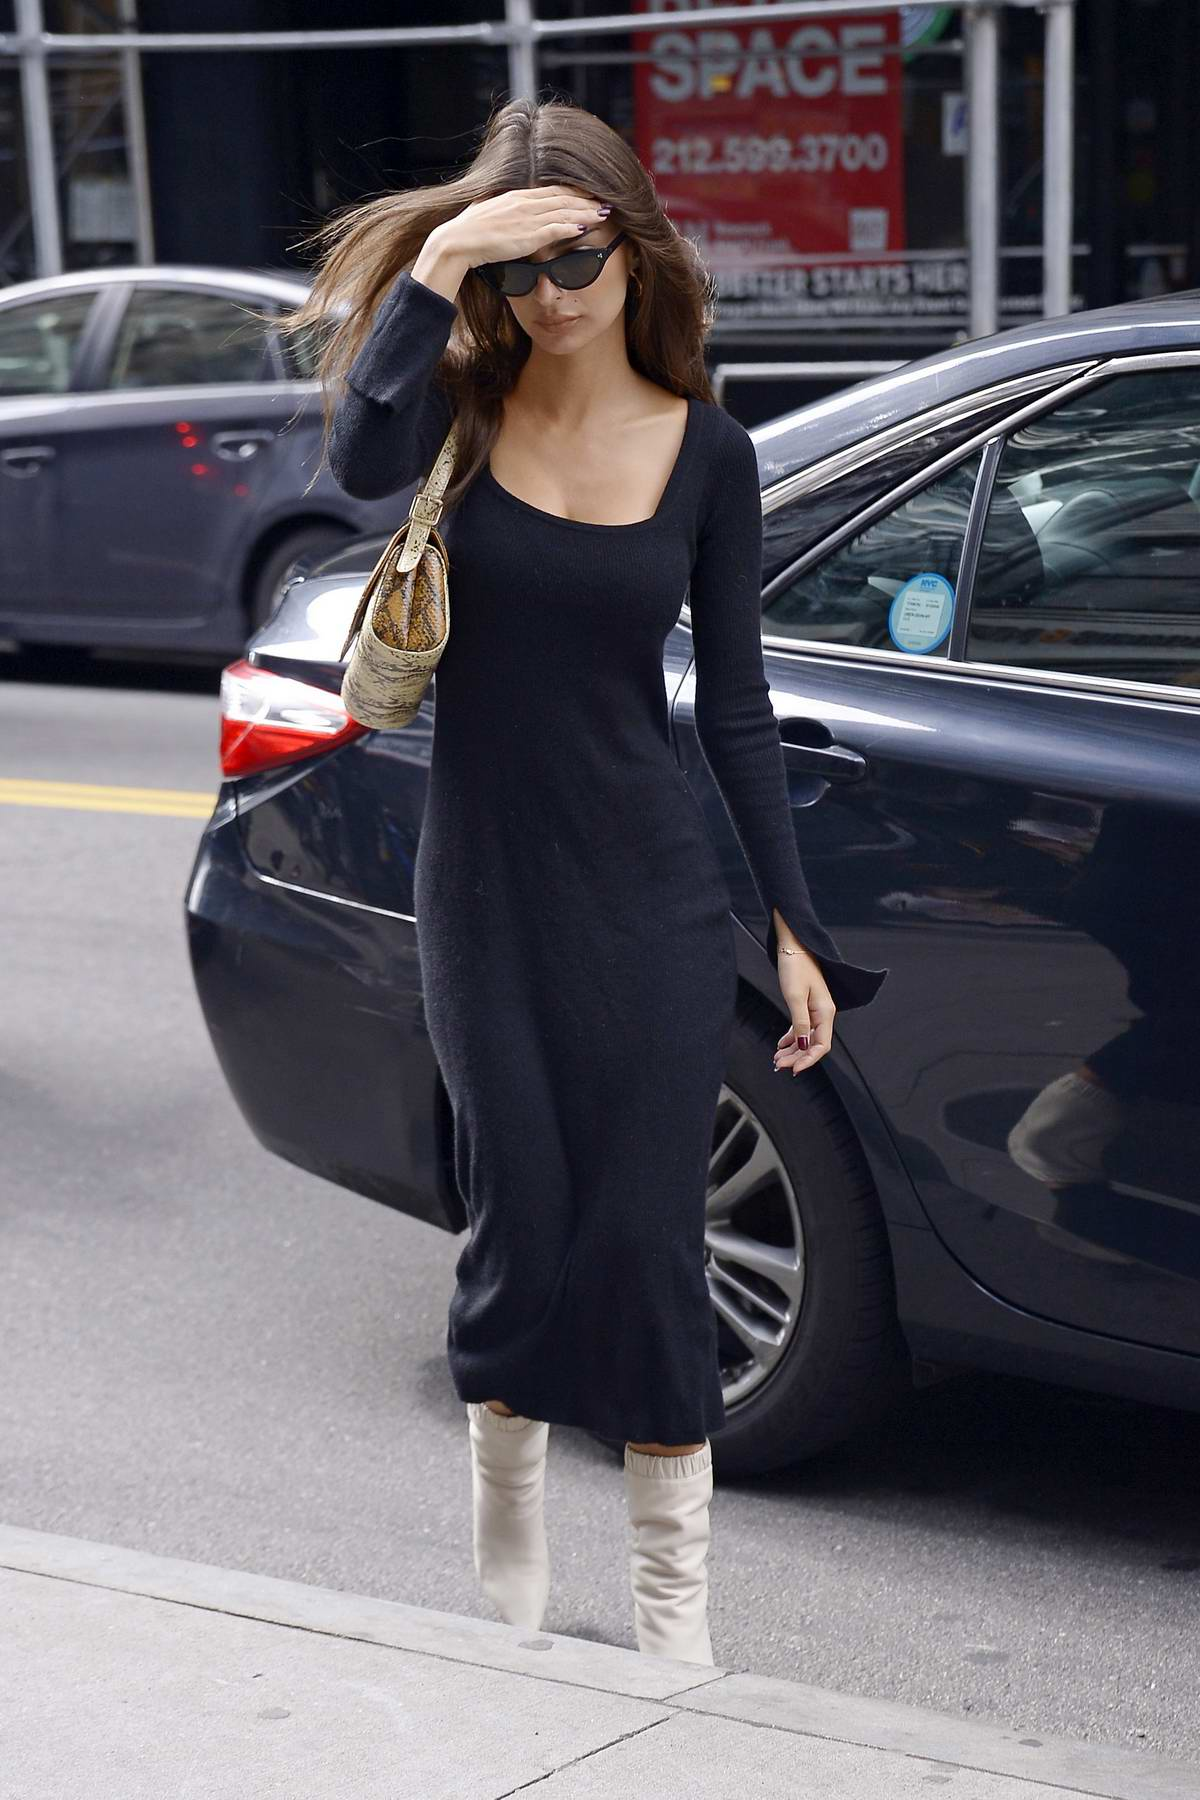 Emily Ratajkowski seen wearing a black long dress and white boots as she arrives at an office building in New York City